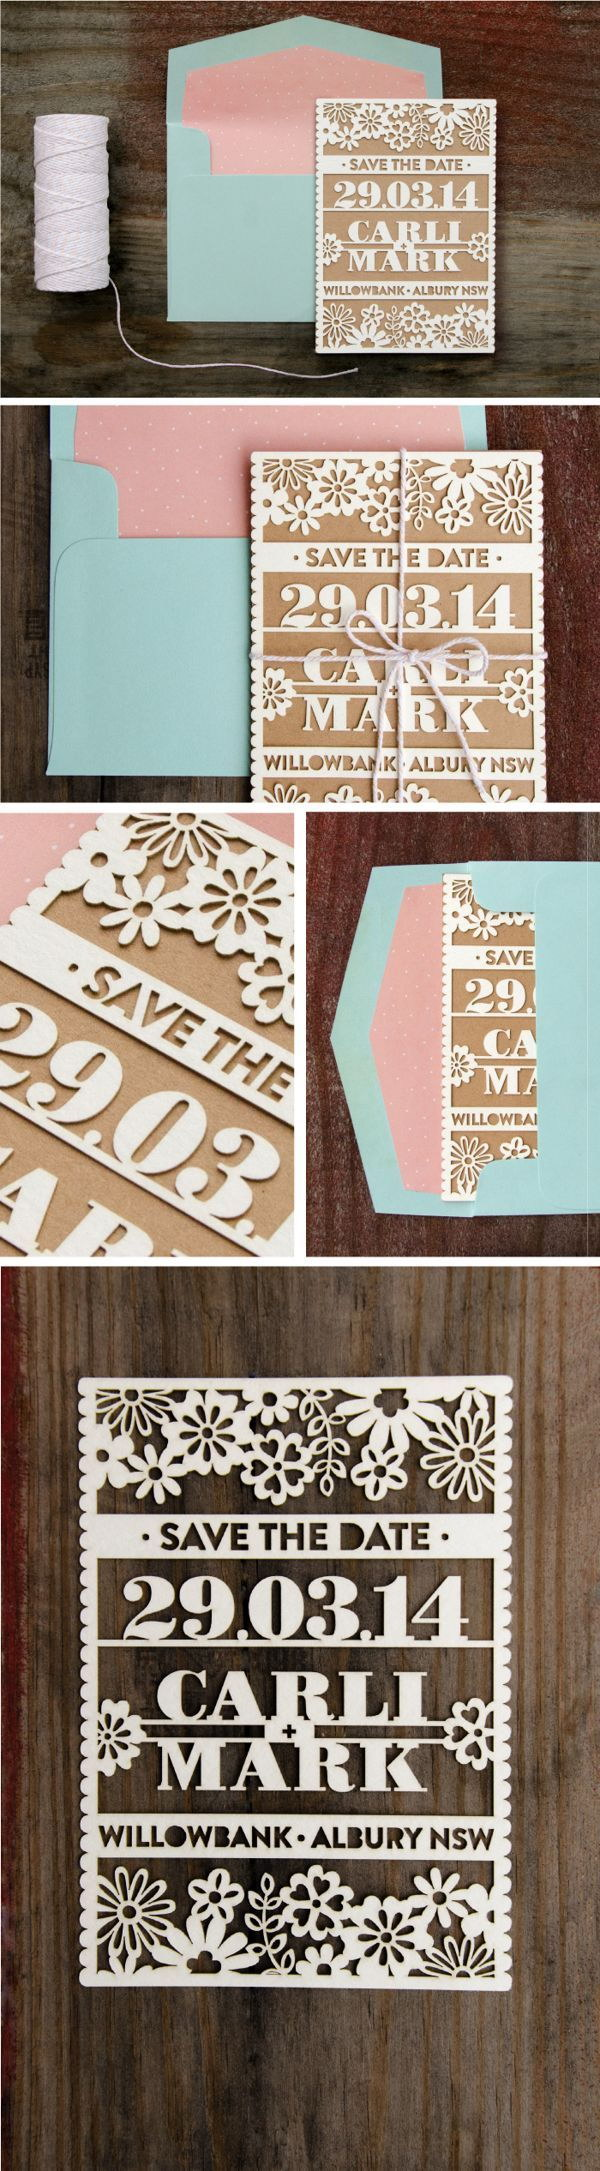 Elegant Laser Cut Save the Date Board